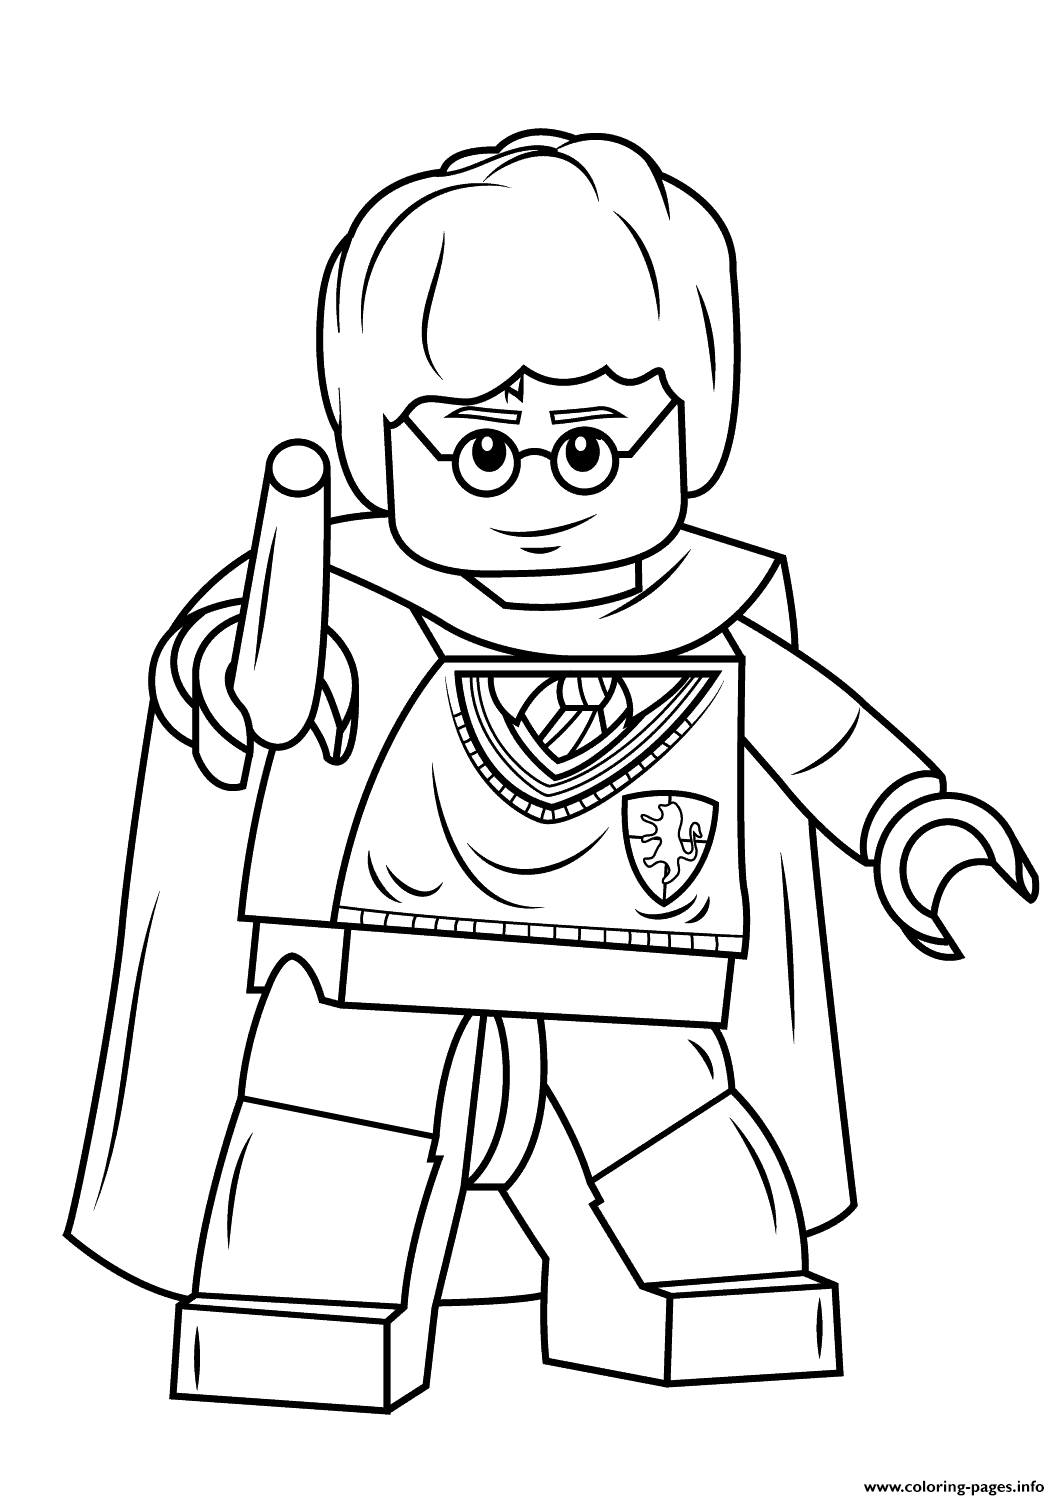 Harry potter coloring pages printable - Lego Harry Potter With Wand Coloring Pages Printable And Coloring Book To Print For Free Find More Coloring Pages Online For Kids And Adults Of Lego Harry